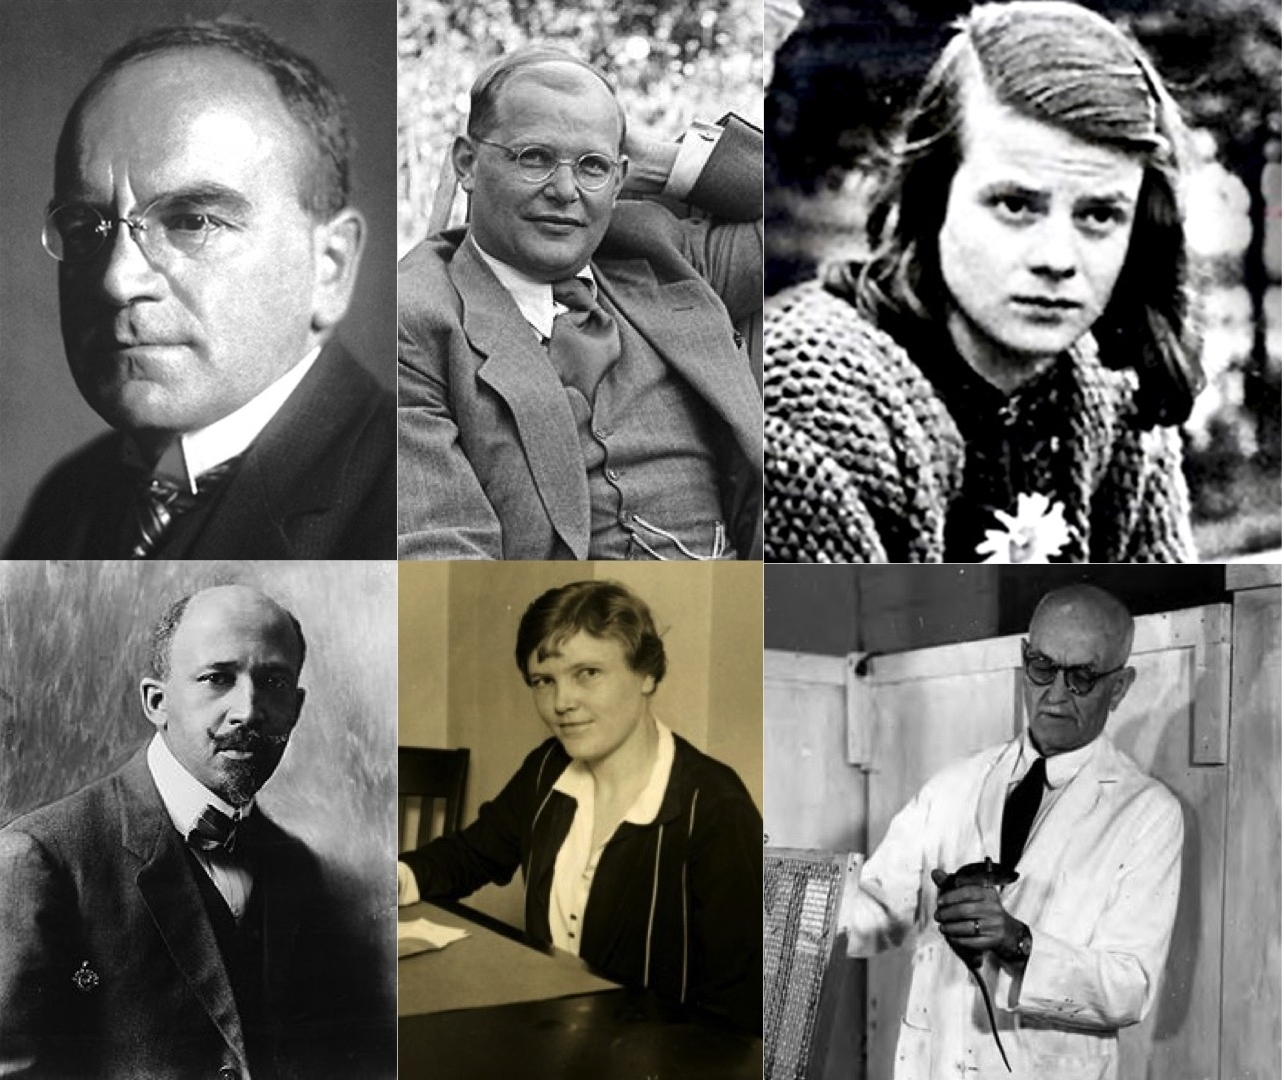 Academics have often resisted  governments' attempts to silence thought and speech. Above are pictured a few who put their careers and often their lives on the line to preserve freedom. Clockwise from upper left: Heinrich Otto Wieland , Dietrich Bonhoeffer ,  Sophie Scholl ,  Edward Tolman , Esther Brunauer , and  W.E.B. Du Bois .